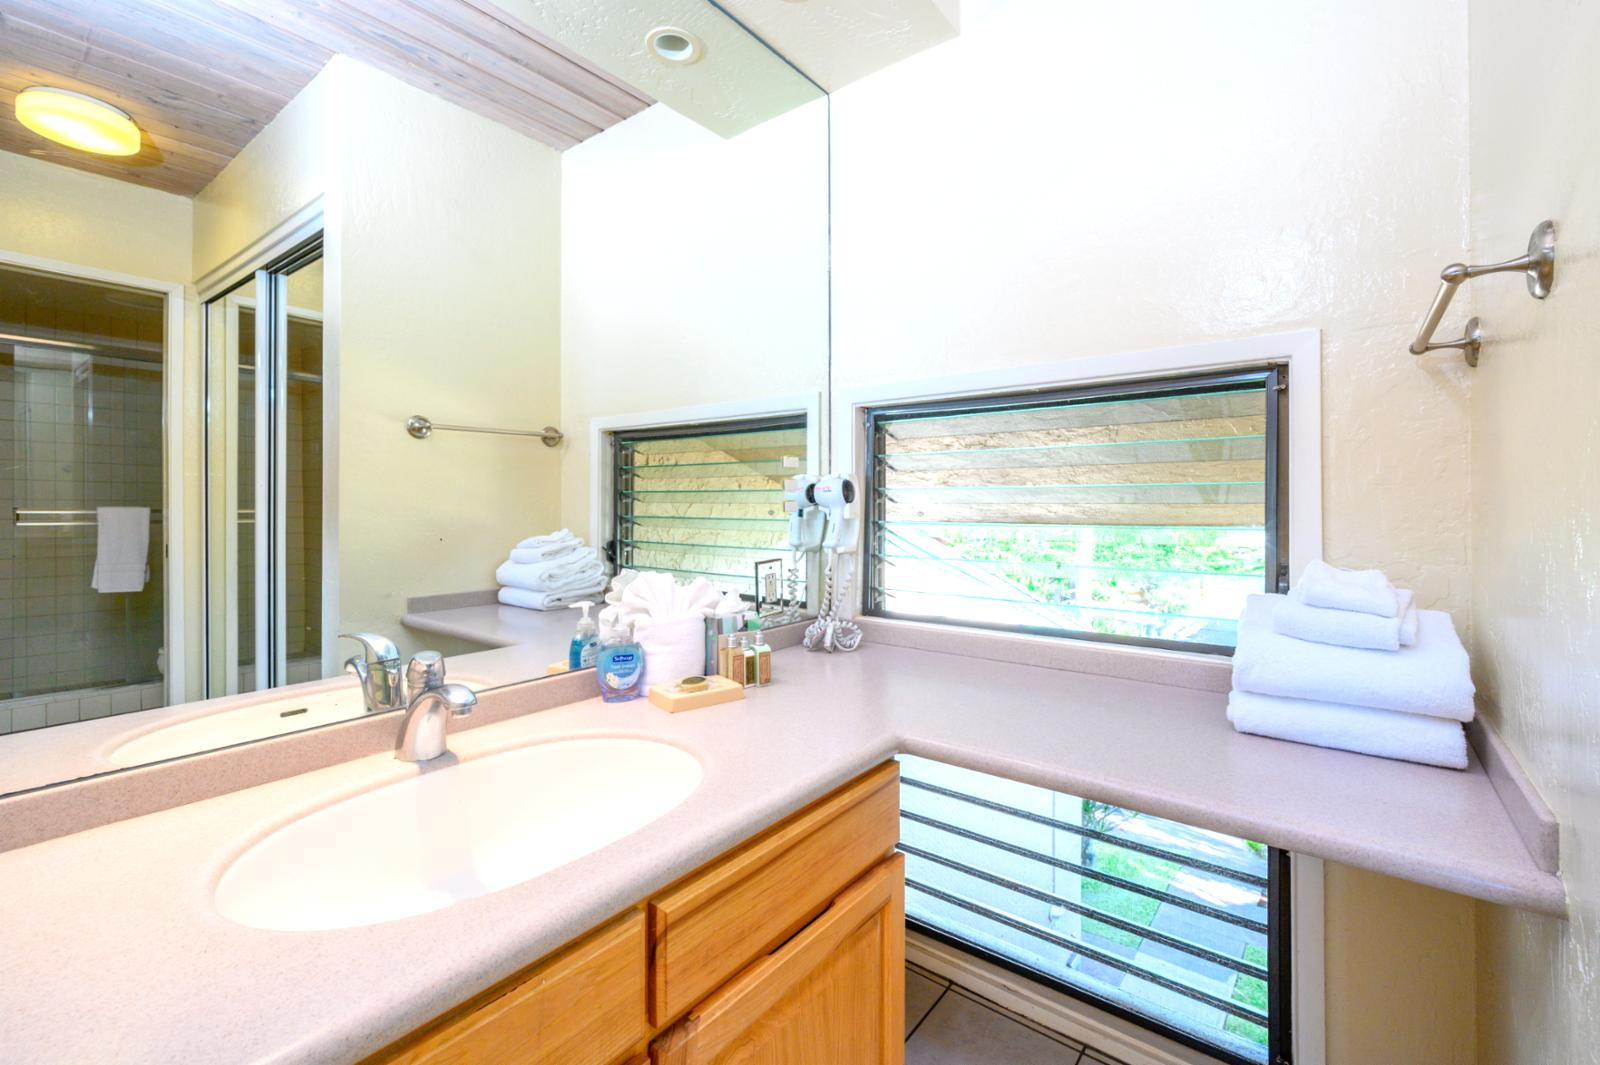 Private bathroom with single sink configuration